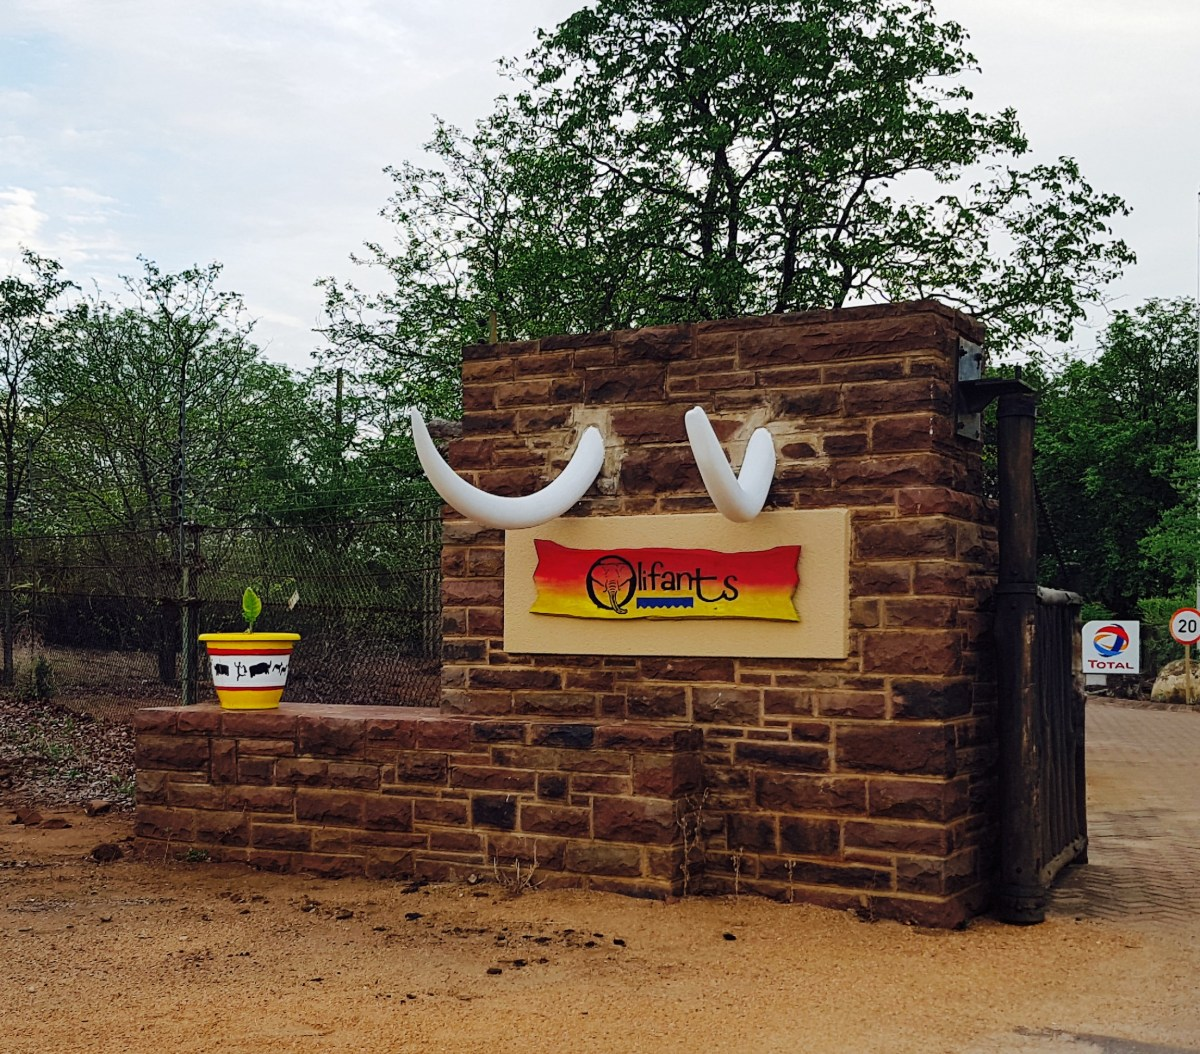 Kruger Park Accommodations: Olifants Rest Camp